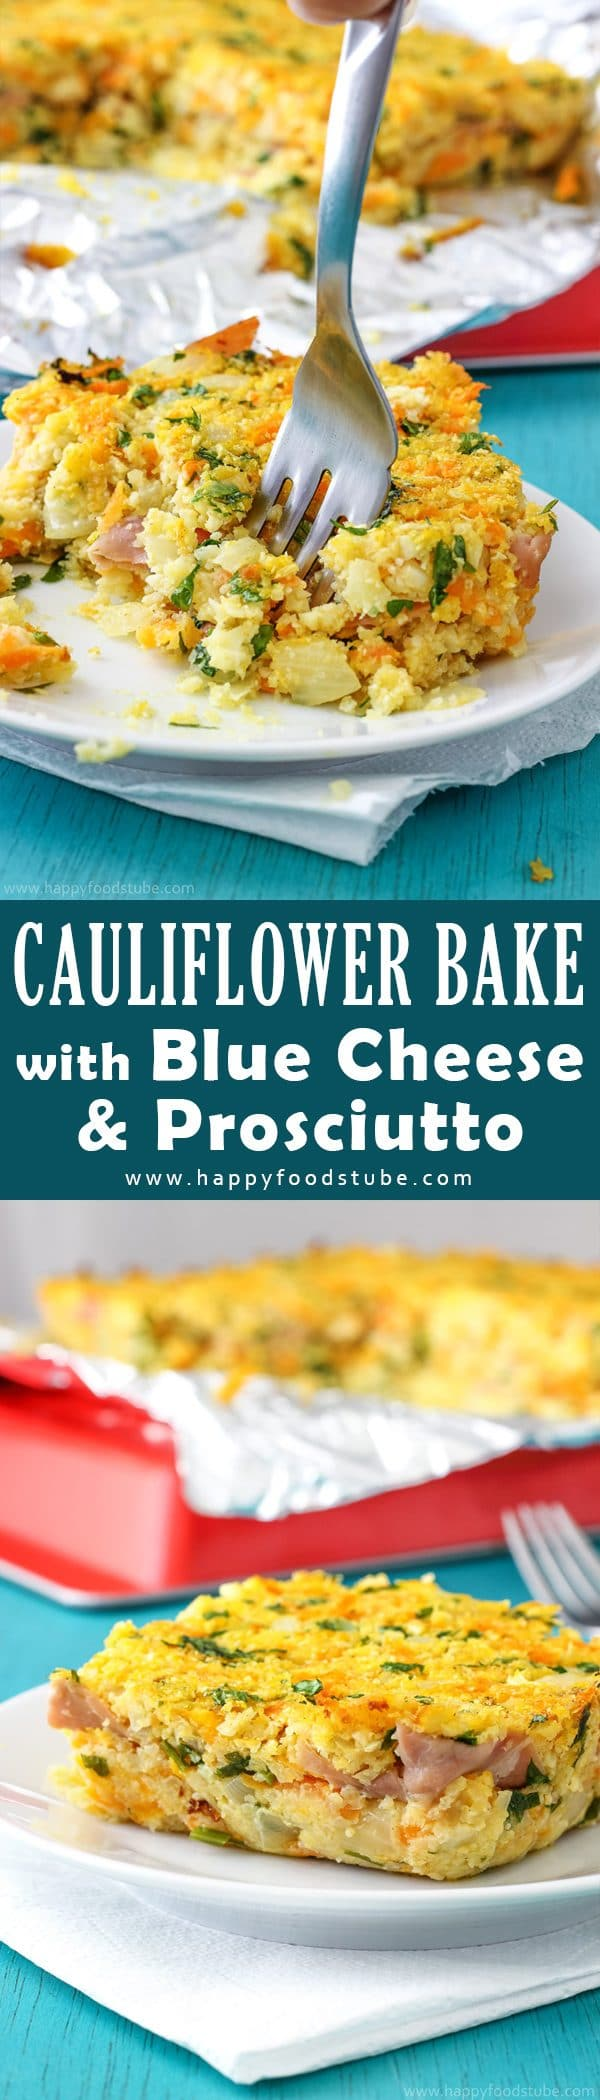 Cauliflower Bake with Blue Cheese & Prosciutto Recipe Picture